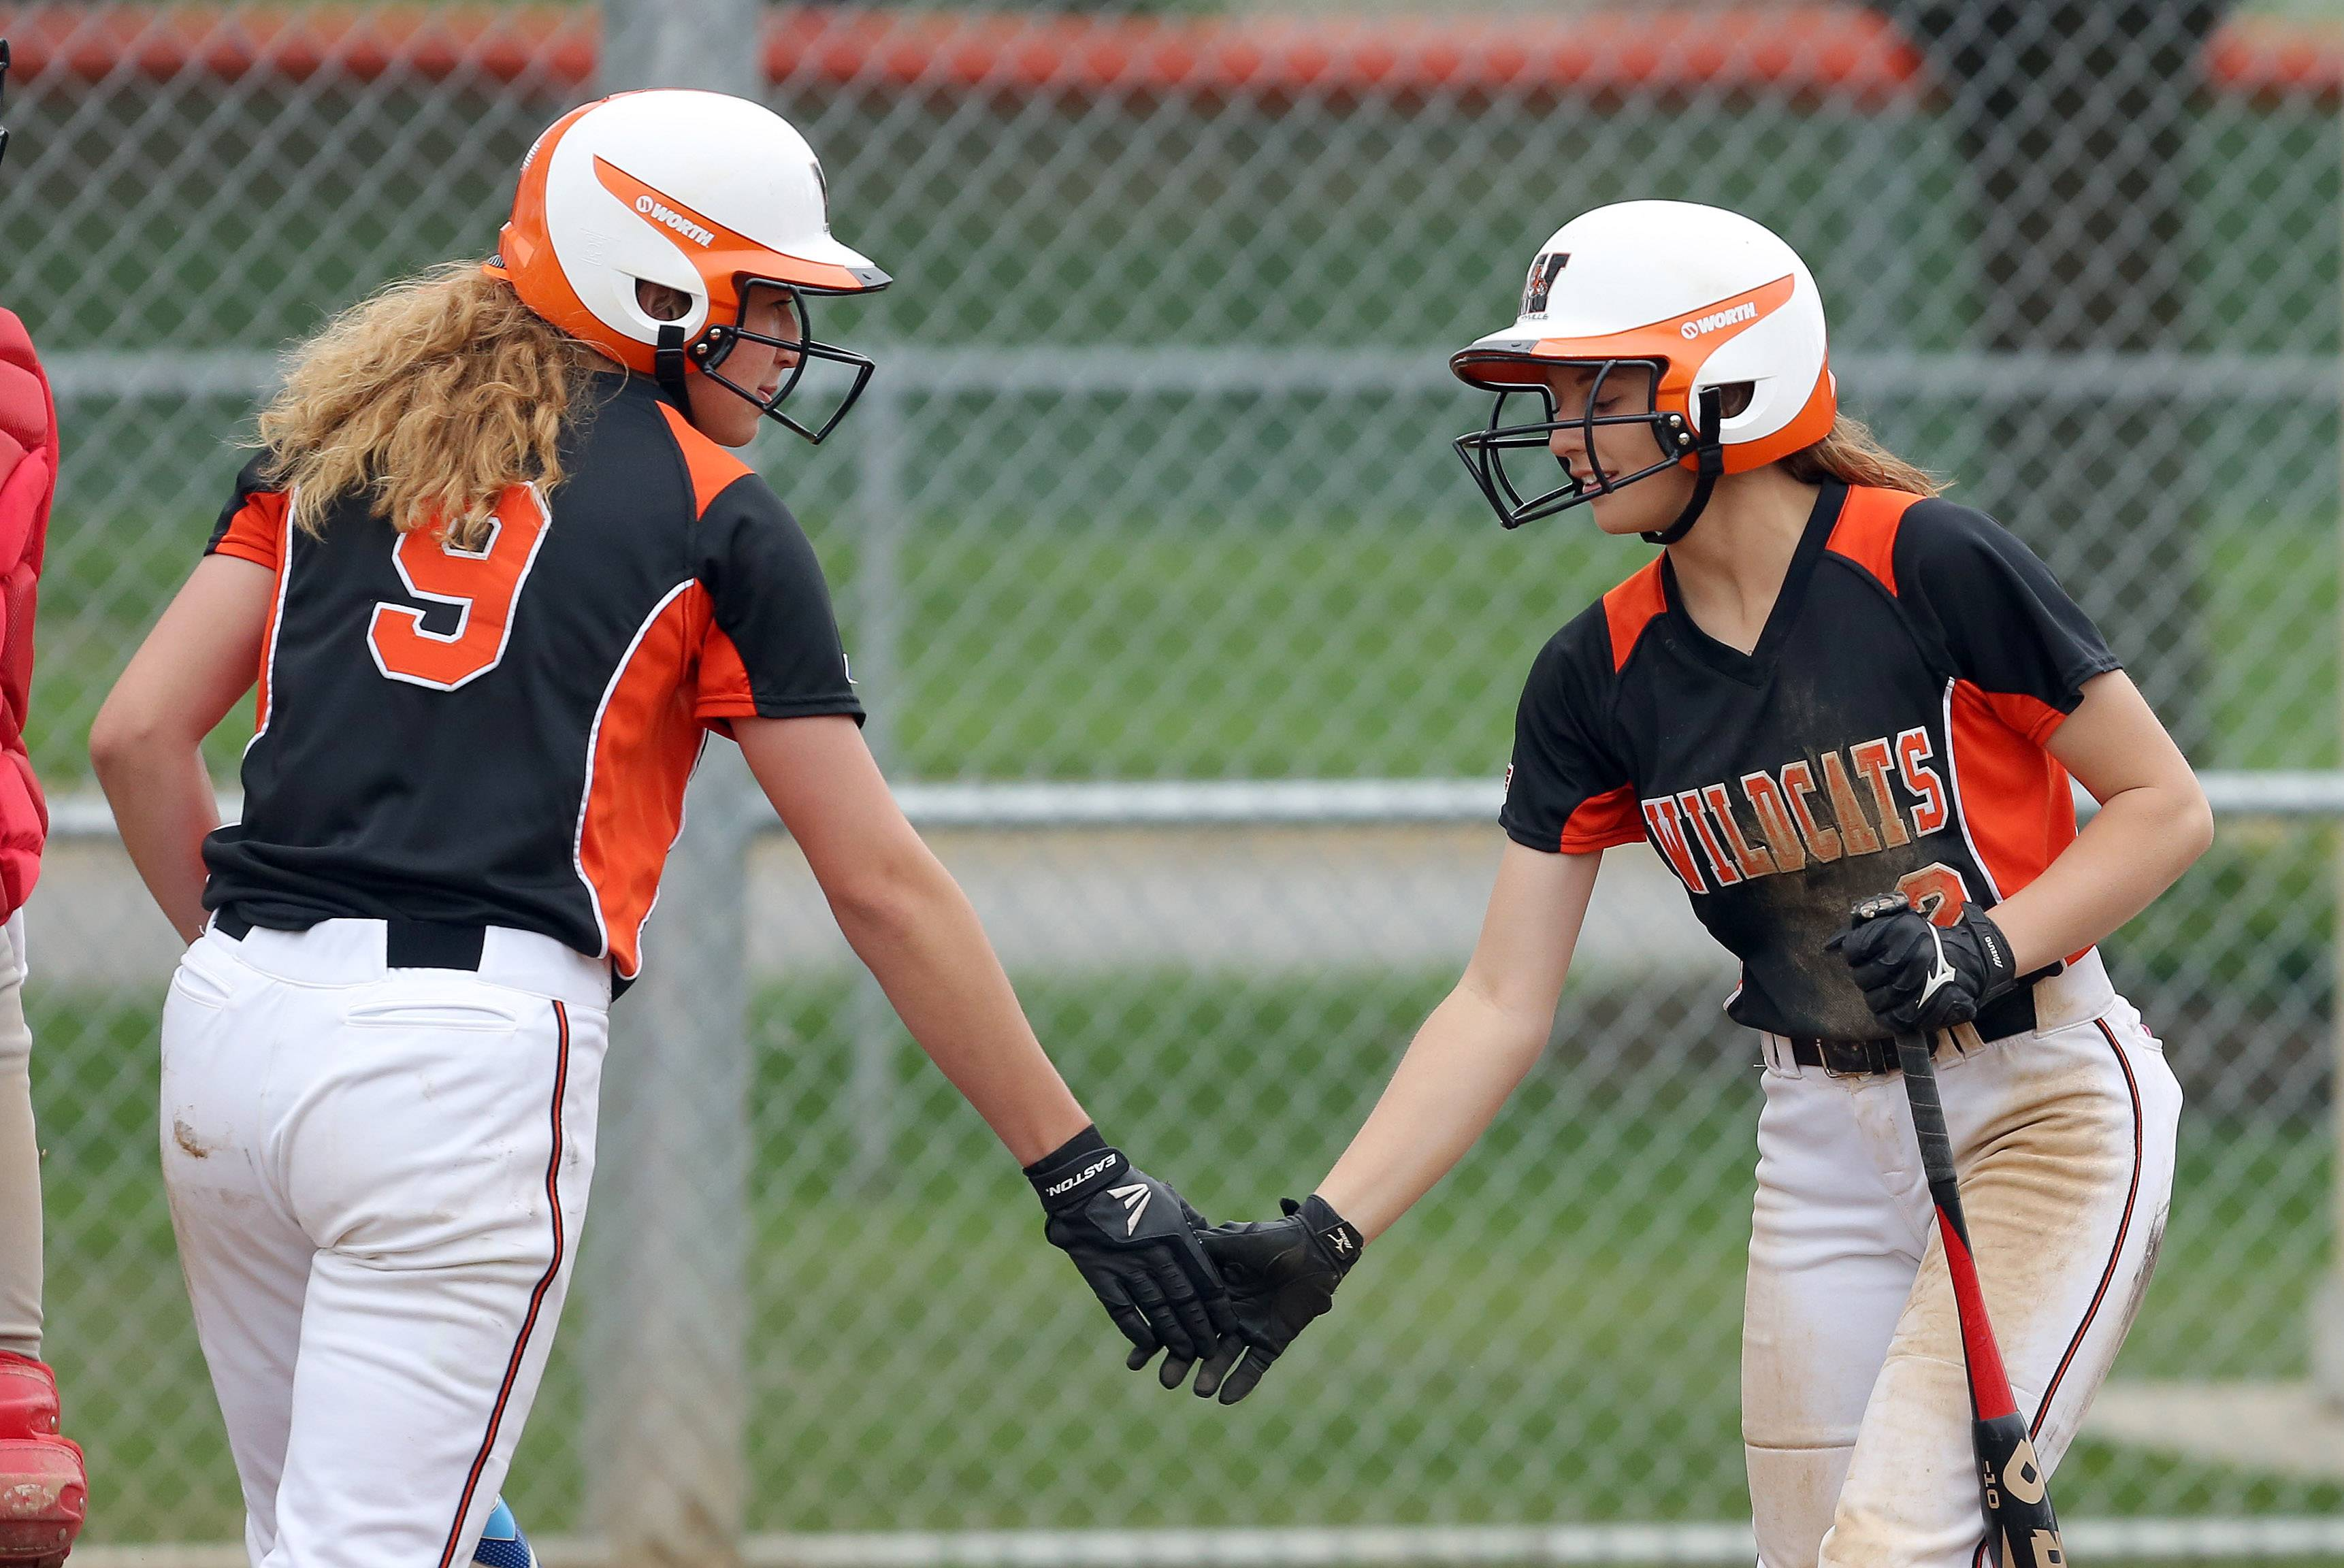 Libertyville's Michaela Mooney, left, and Jessie Lauret share a high-five after Mooney scored against visiting Mundelein on Tuesday.